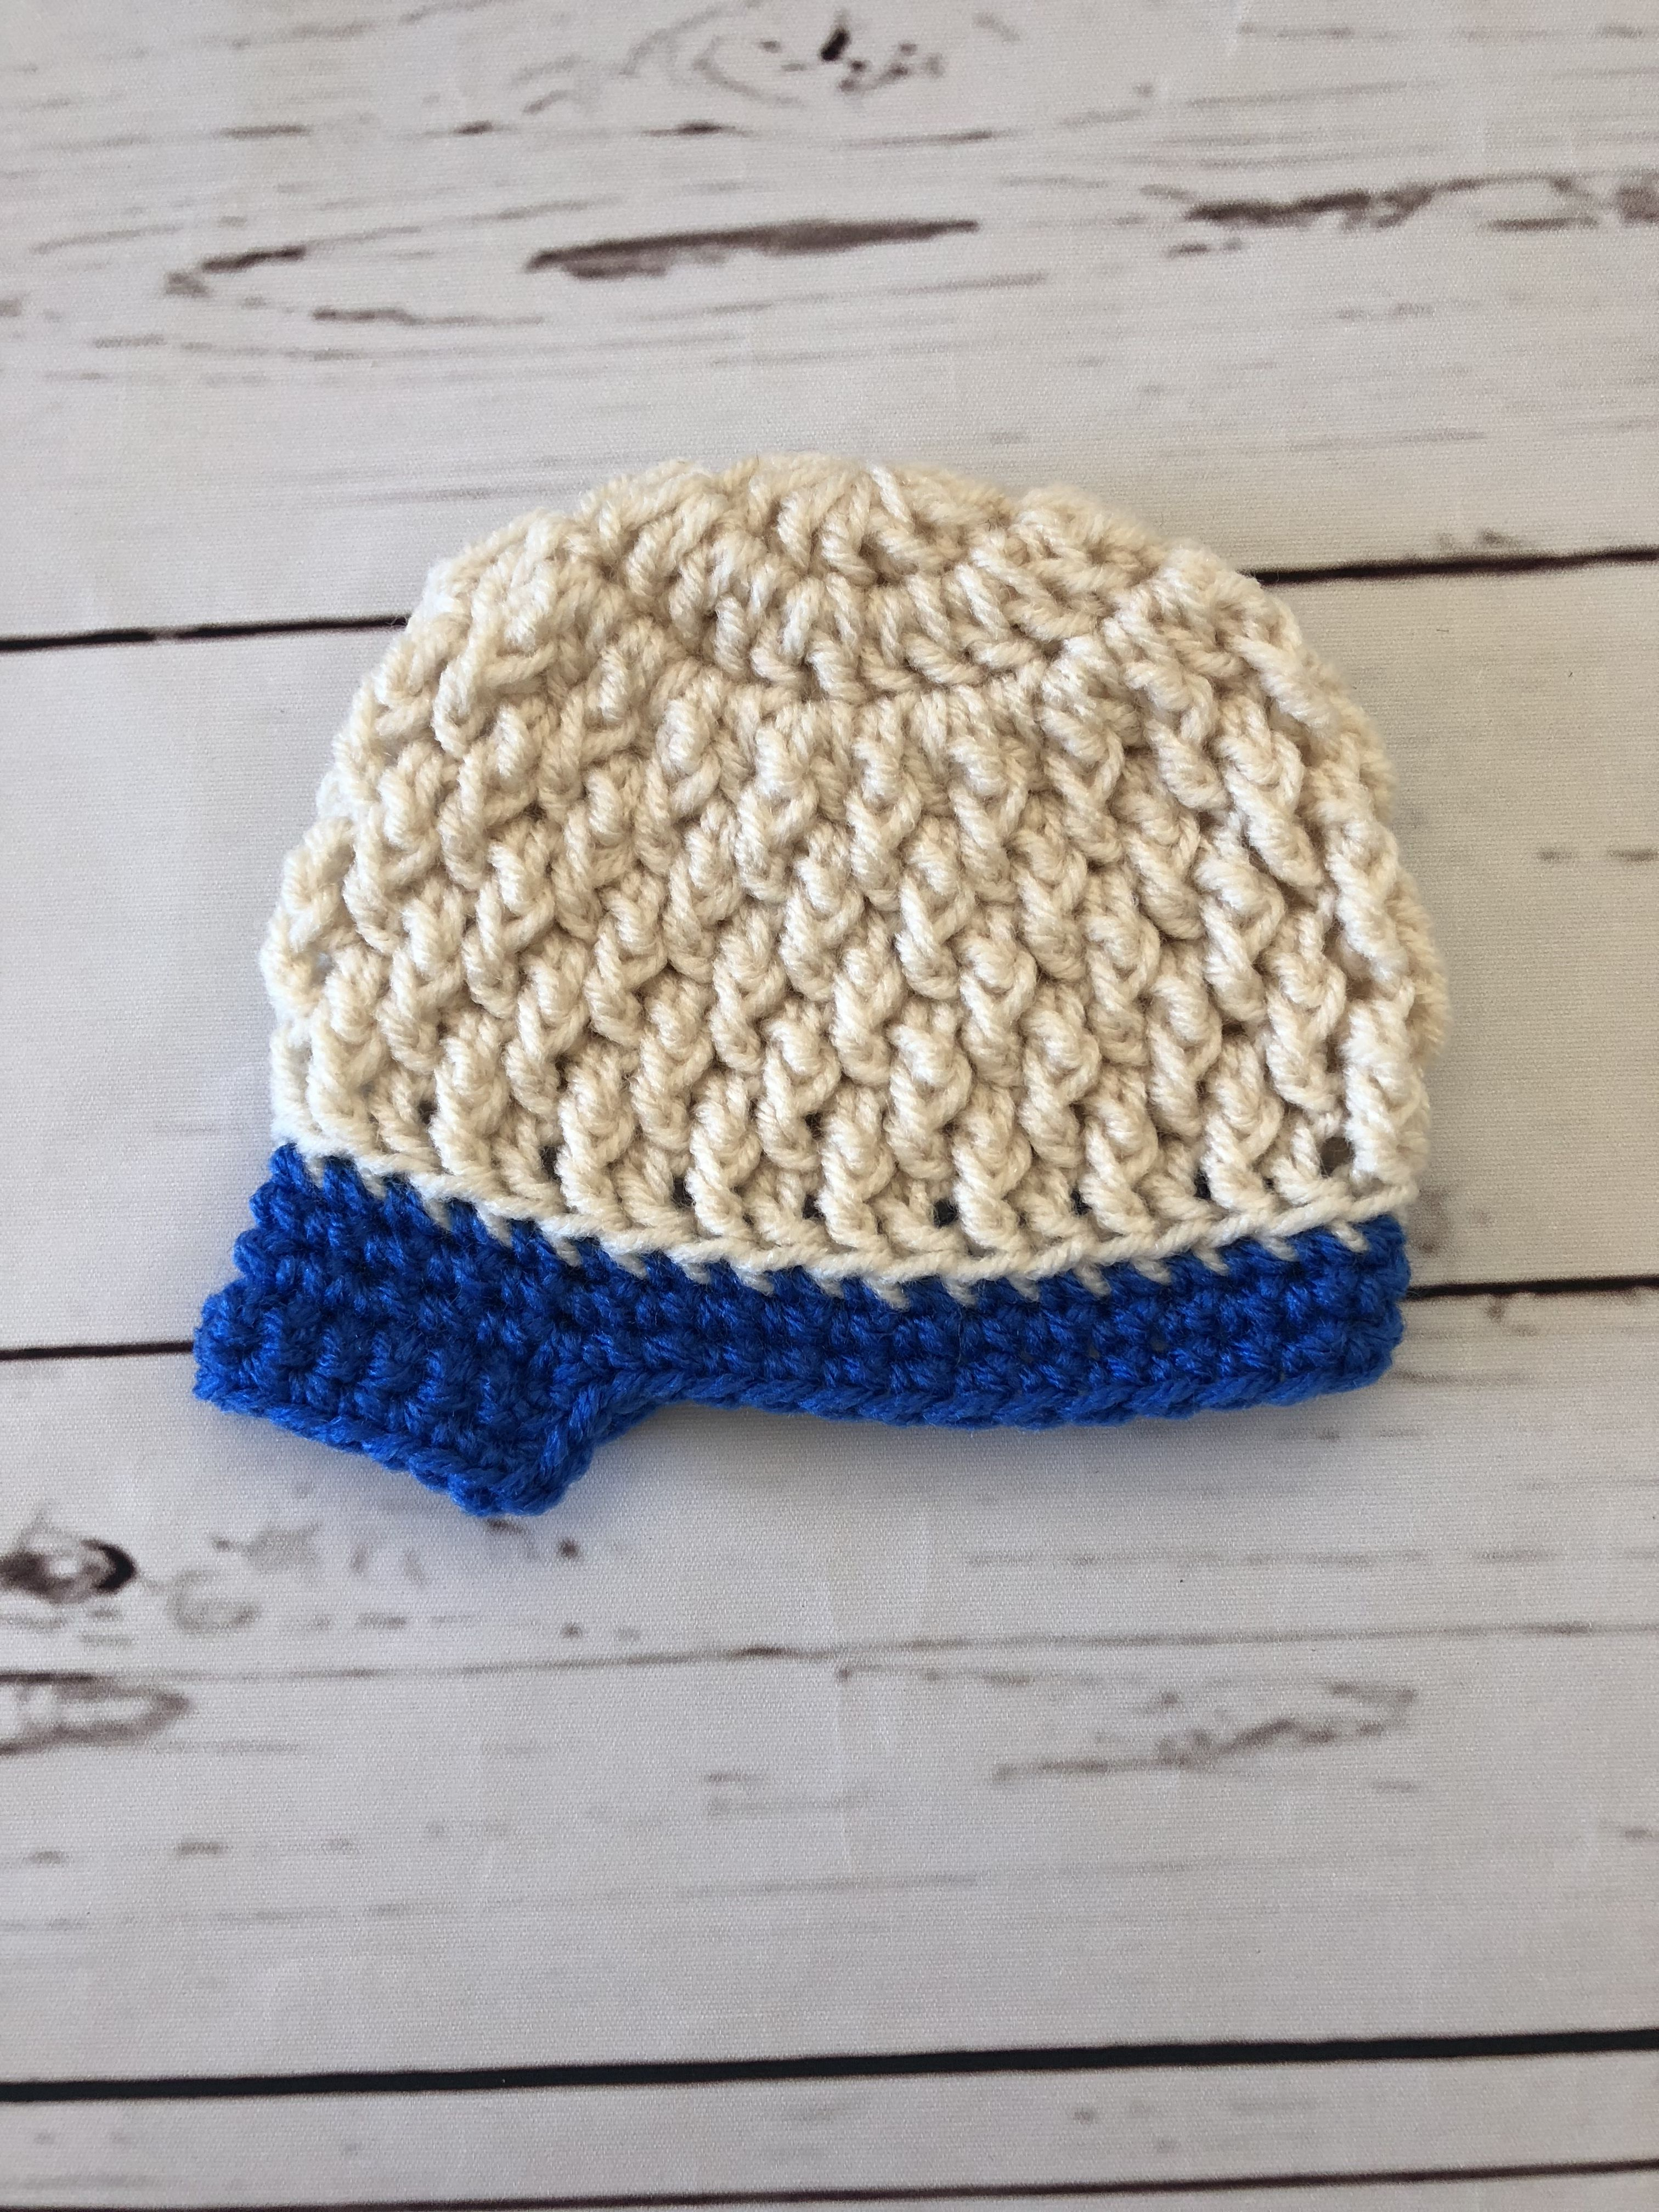 Newborn Crochet Hat - Baby Newsboy Hat - Oatmeal and Blue - Made to ...